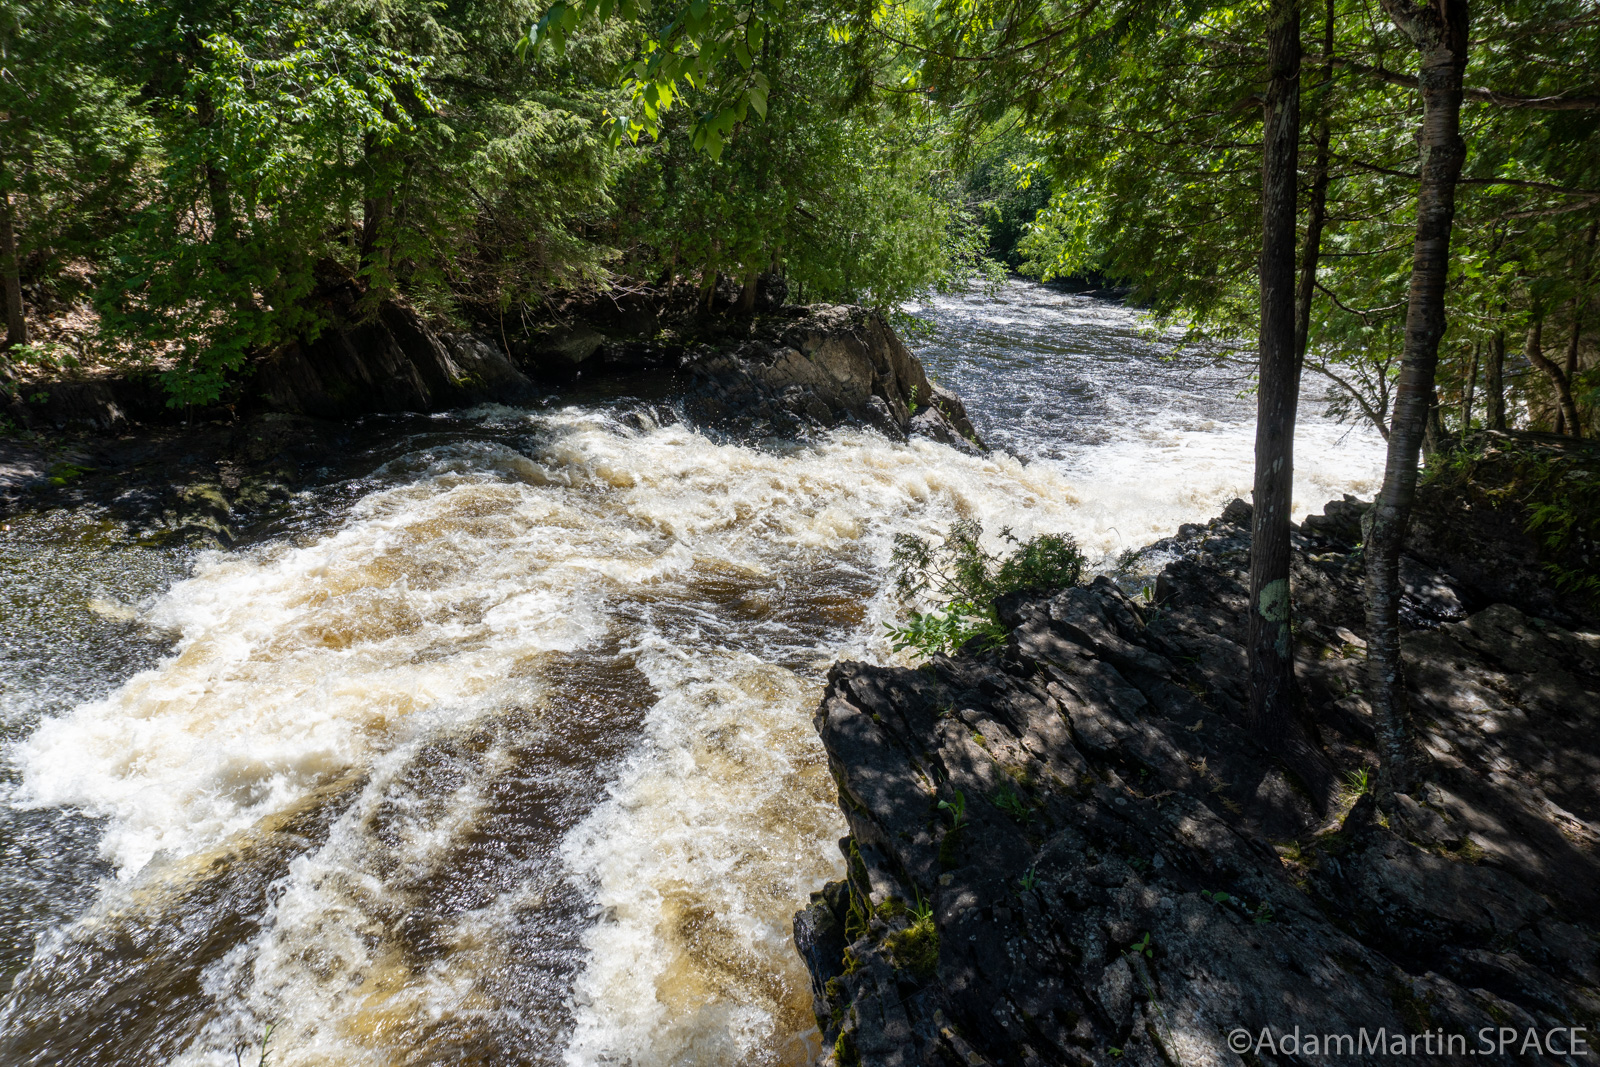 LaSalle Falls - Looking downstream over the main falls